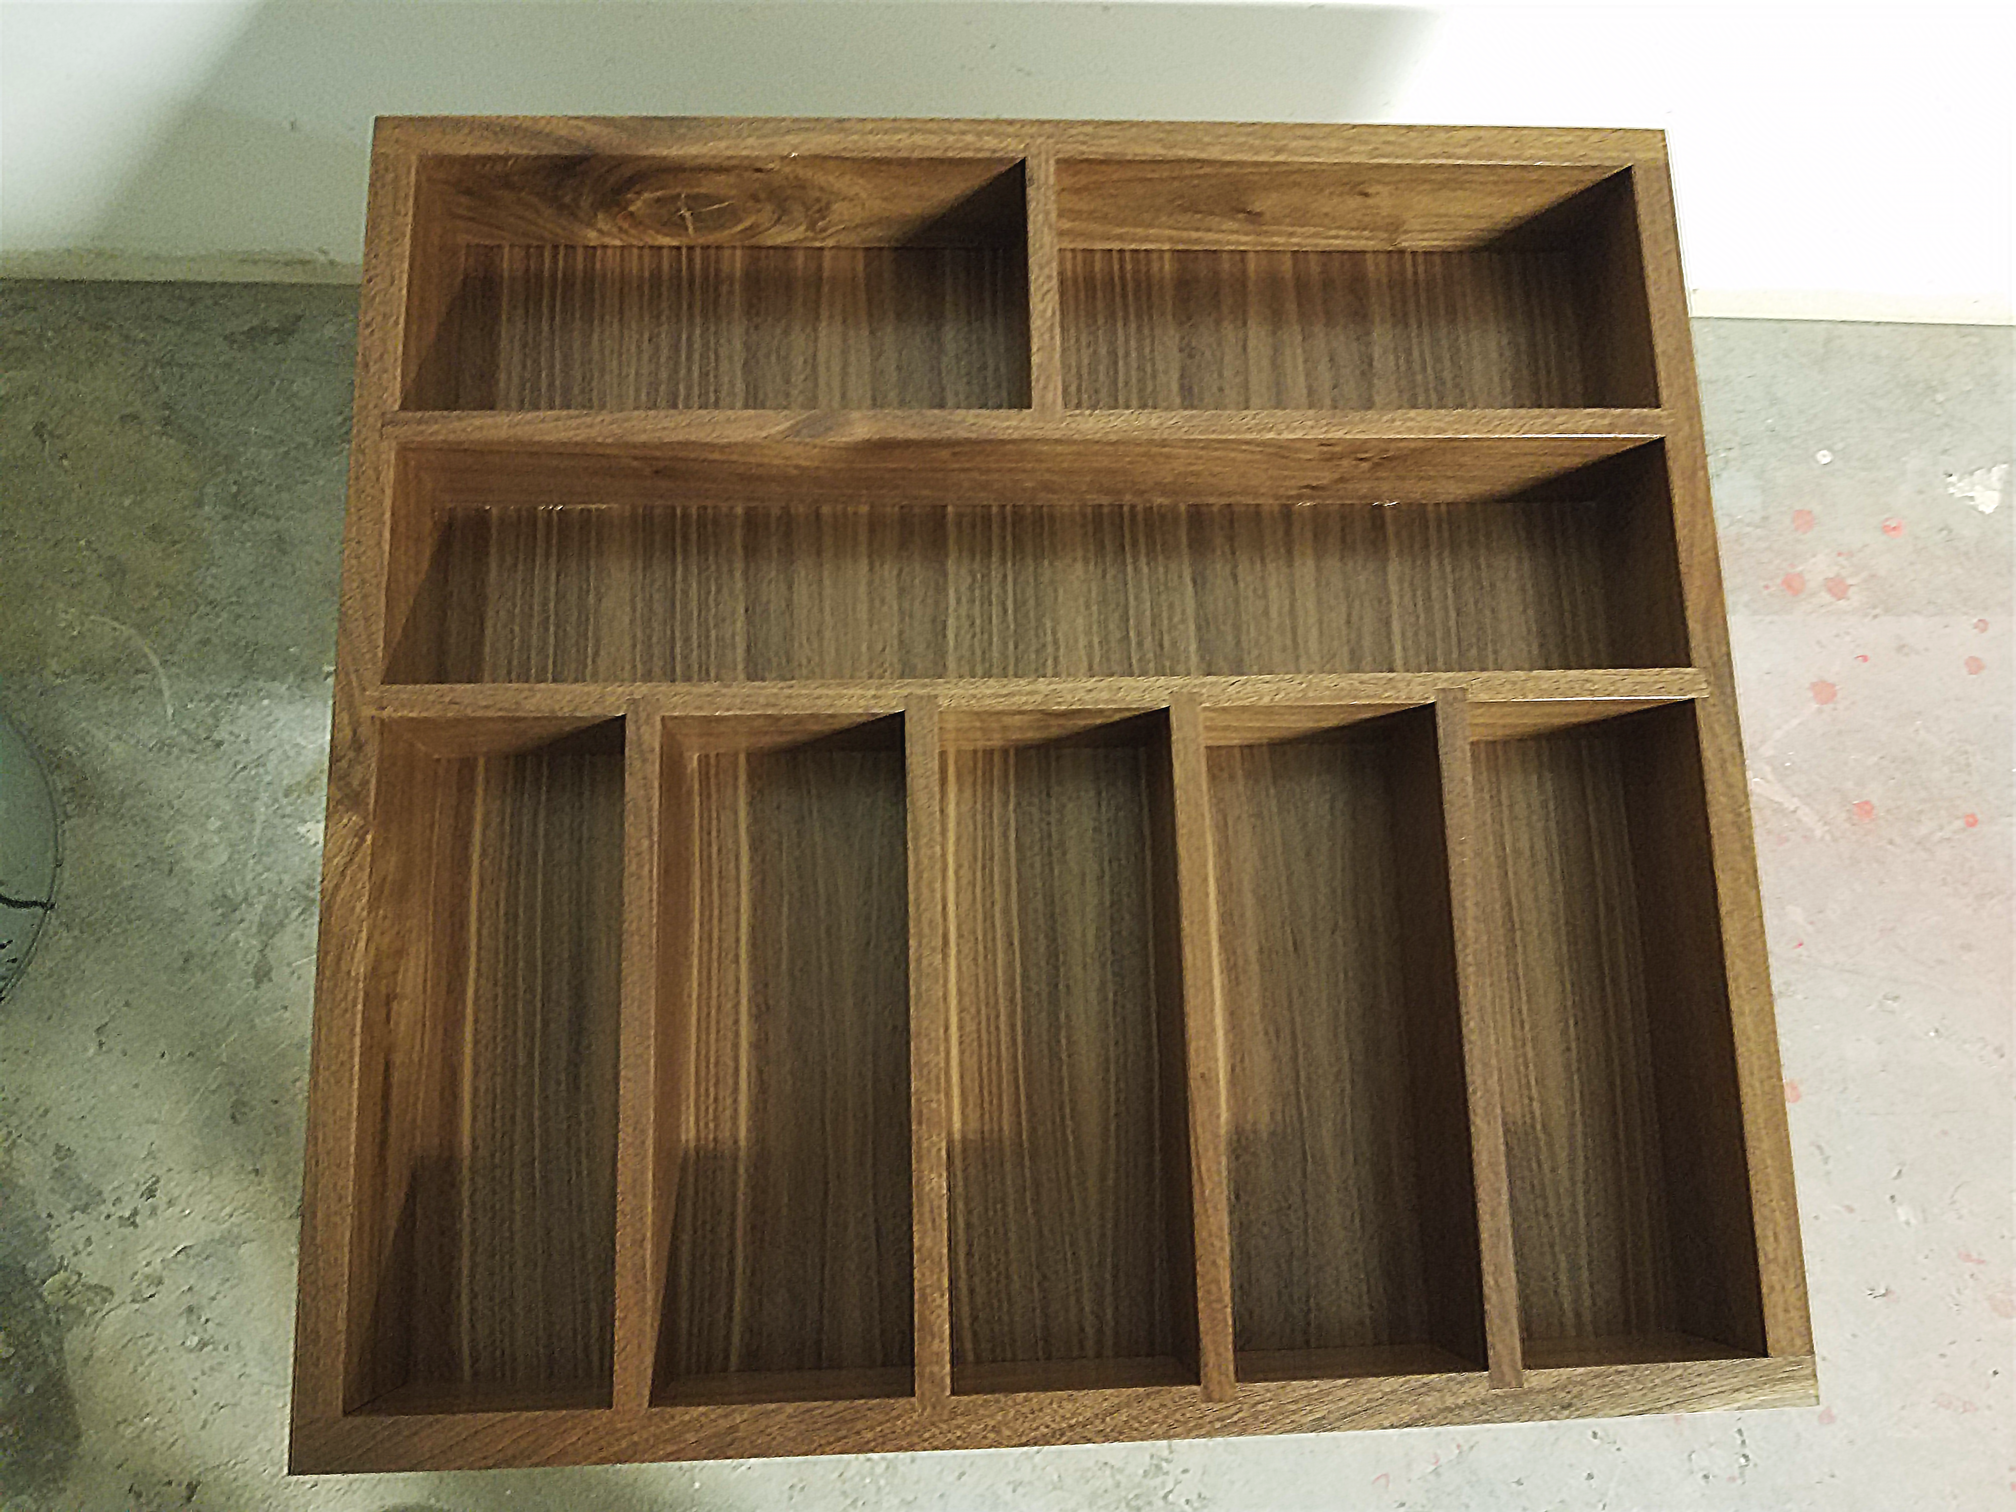 https://competitivewoodcraft.com/wp-content/uploads/2021/01/hero-Walnut-divided-drawer-box.png